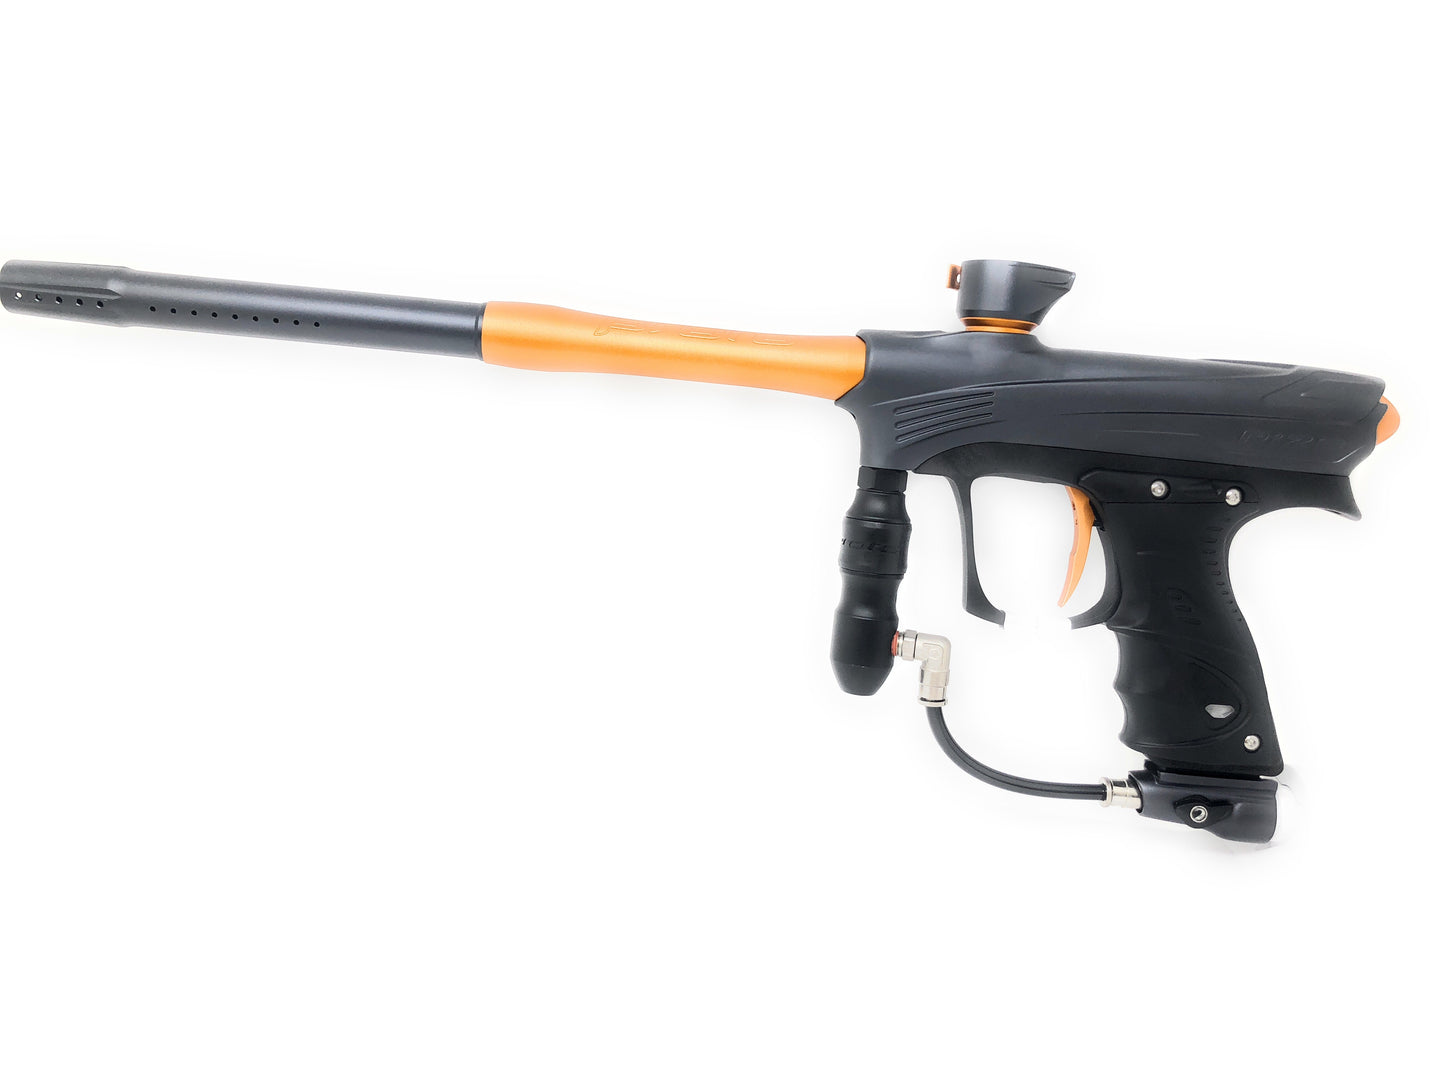 Photos of Dye Rize Maxxed Paintball Marker - Grey/Orange. Photo taken by drpaintball.com